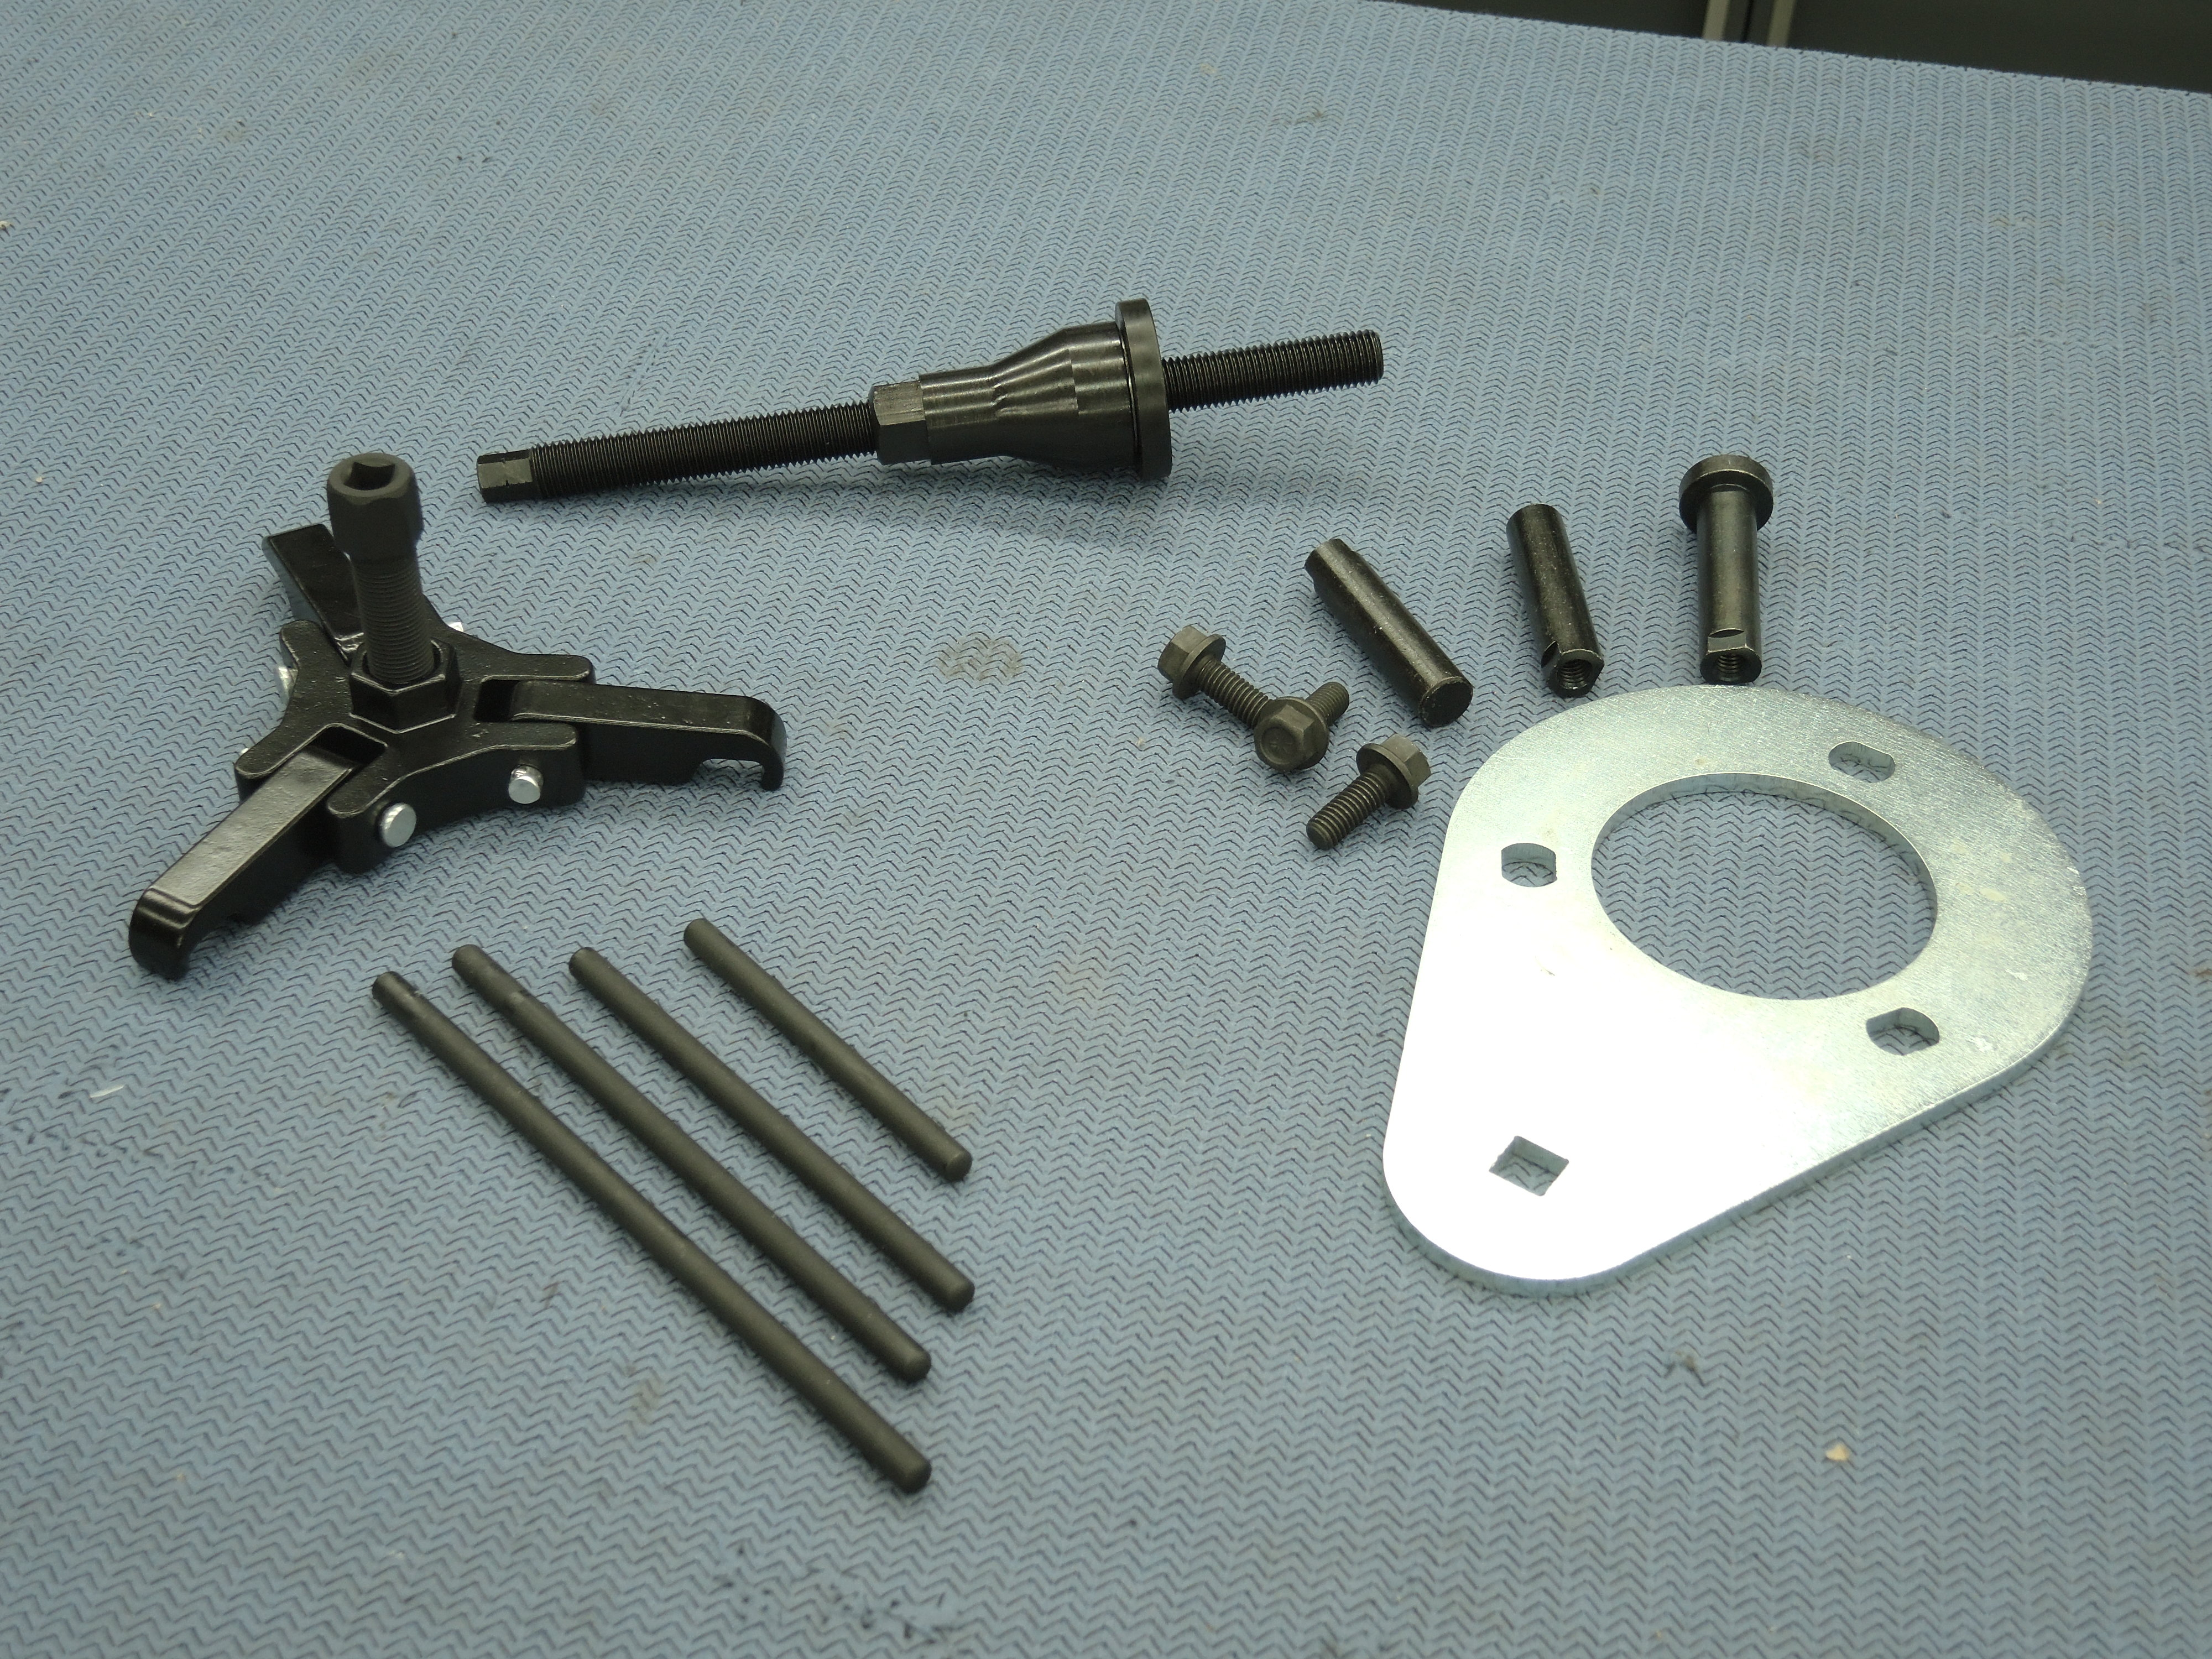 How To Use An Ls Harmonic Balancer Puller And Installer Tool